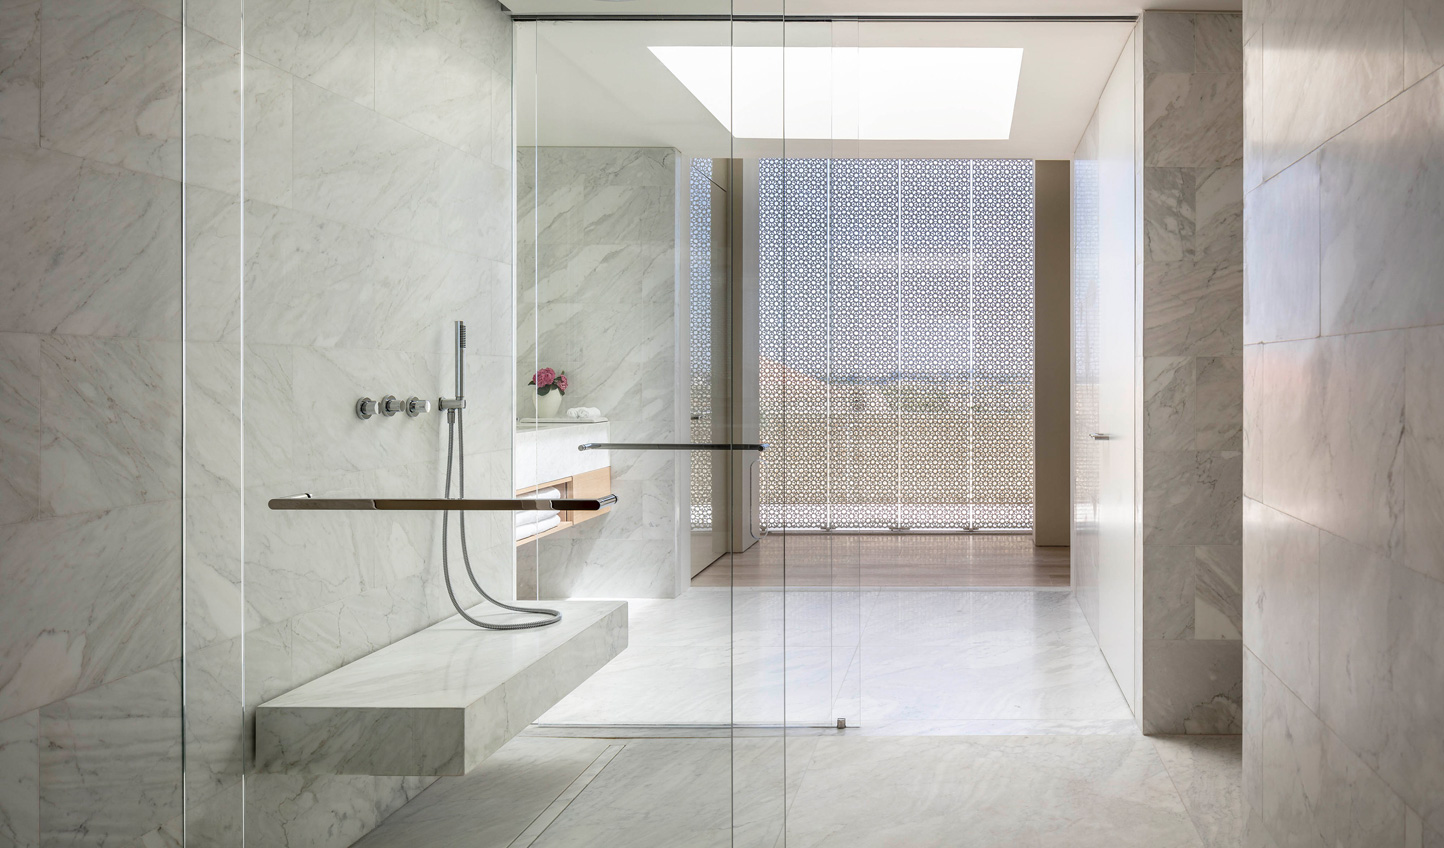 Minimalist marble bathrooms perfectly counteract both the contemporary and historic rooms